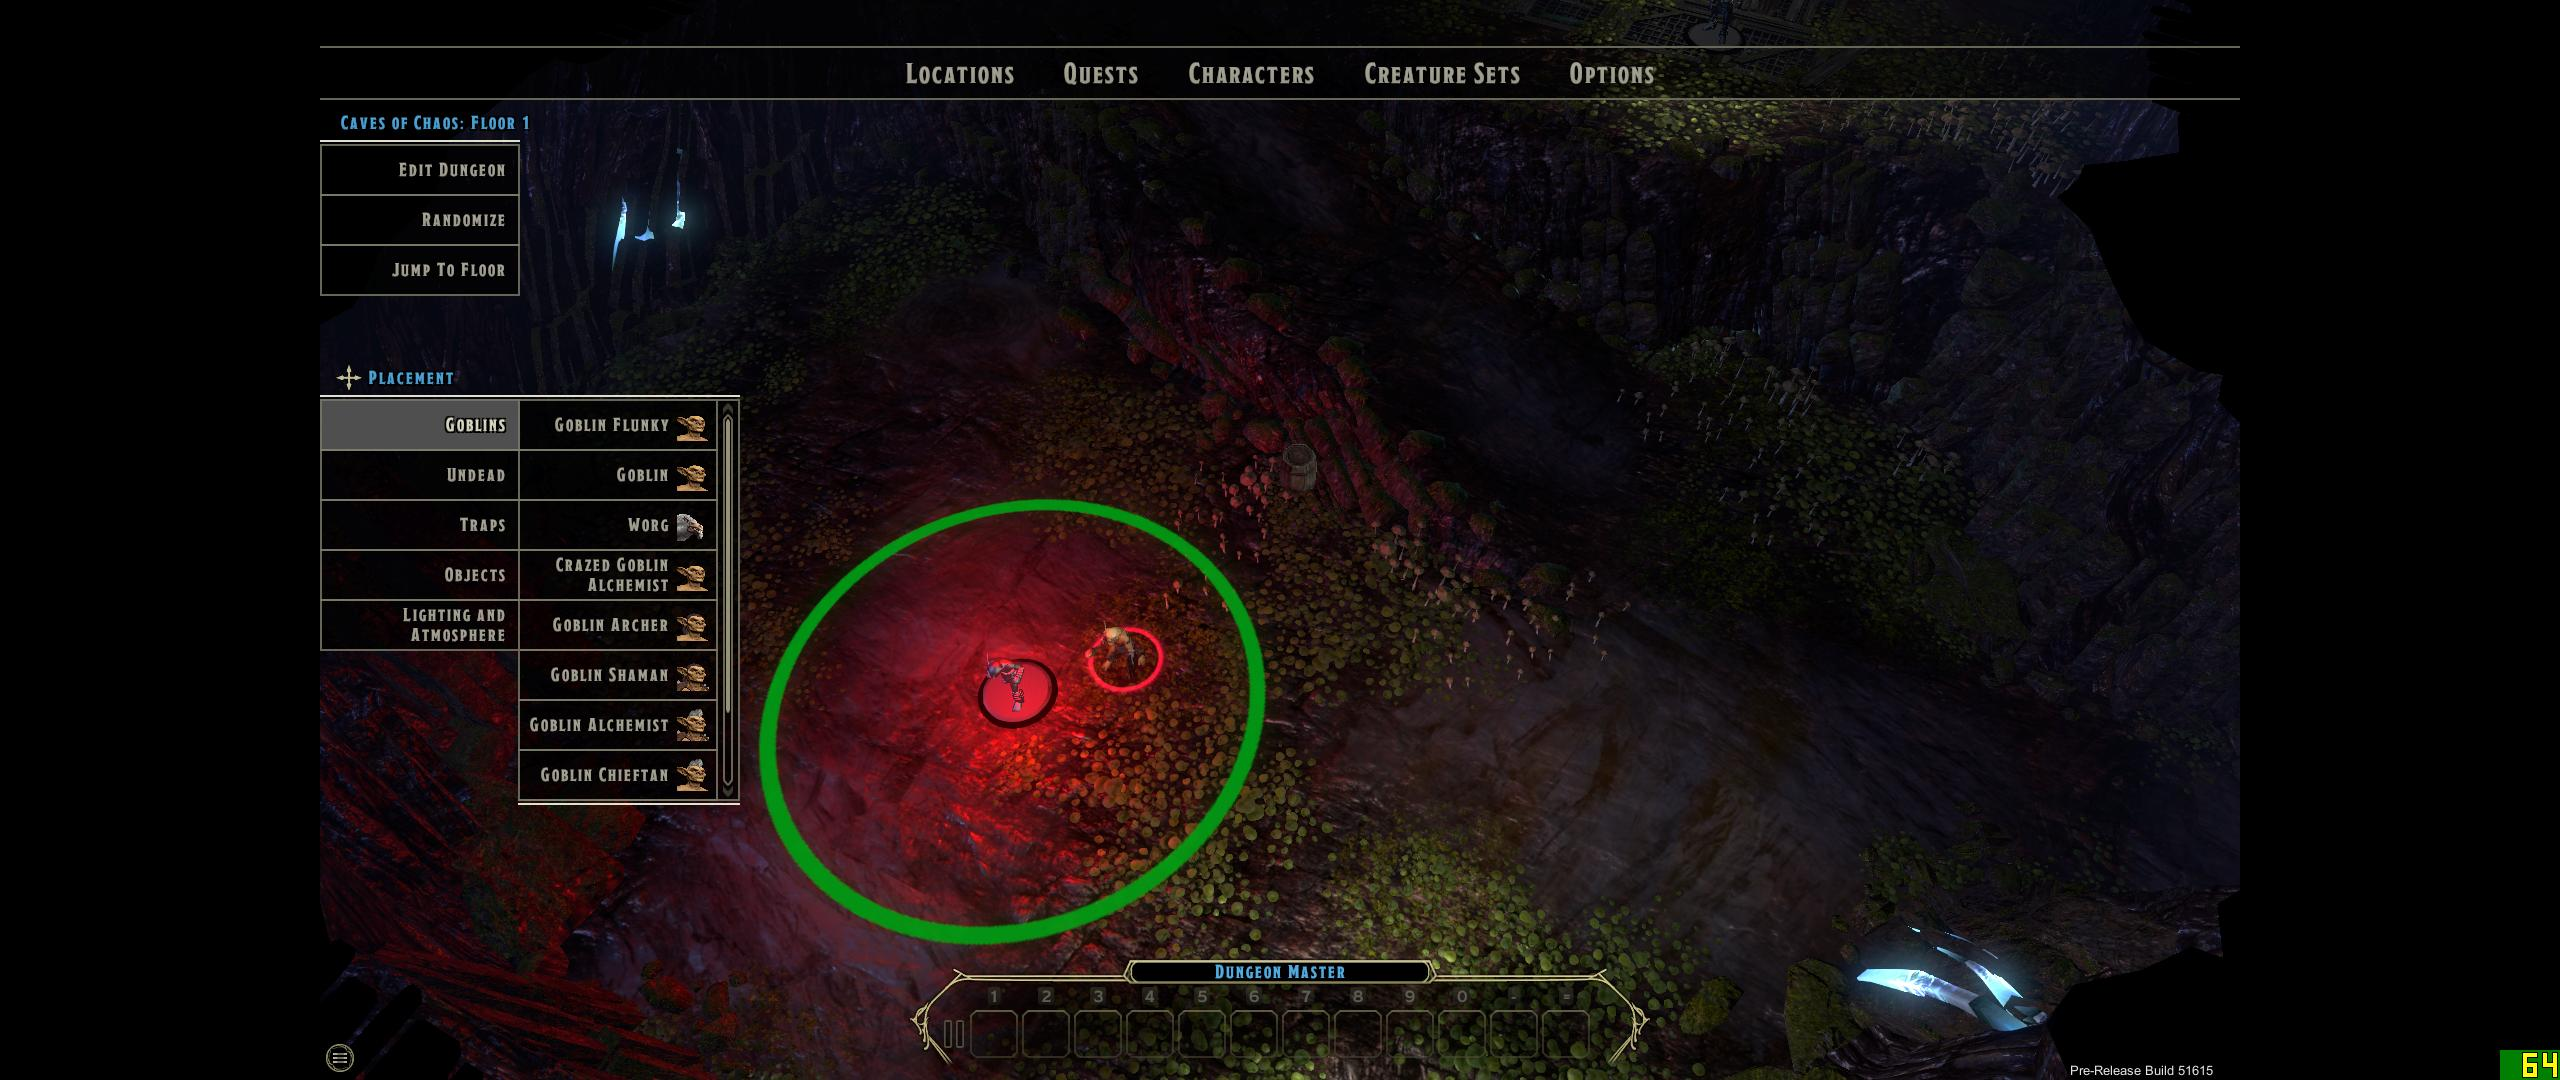 It's easy to create encounters in Sword Coast Legends' dungeon master tools.